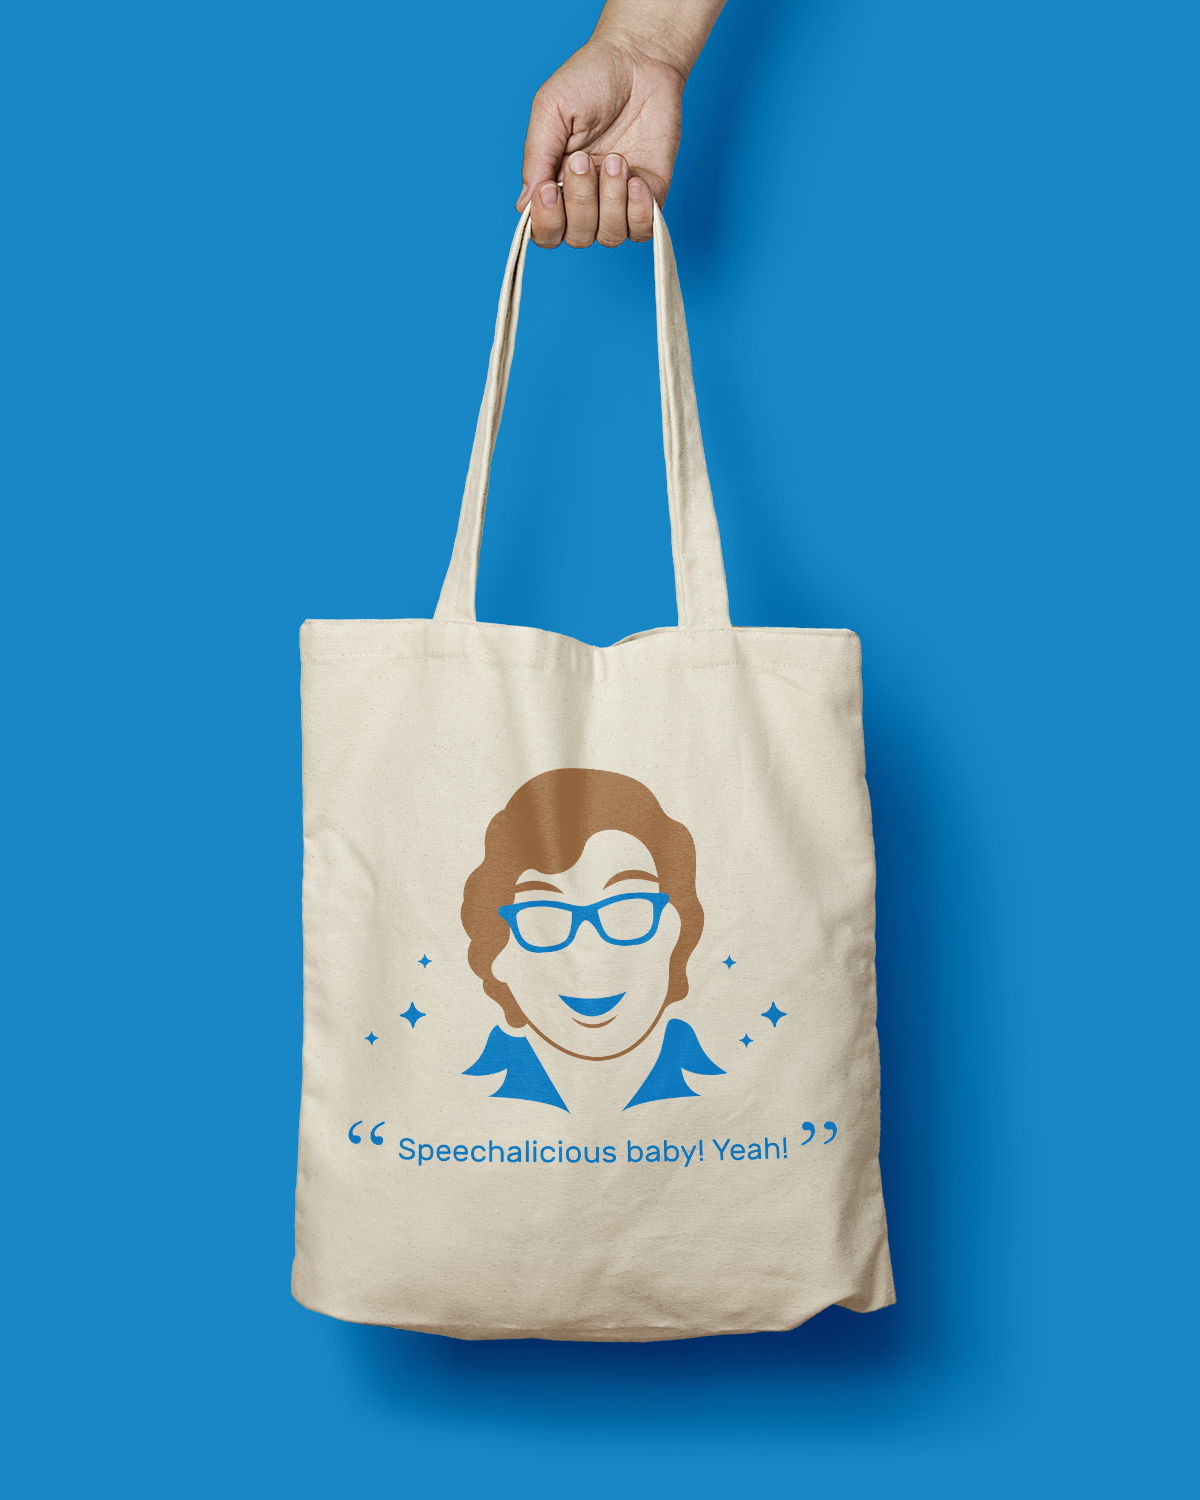 Invo Health: Vector Illustrations on Tote Bags